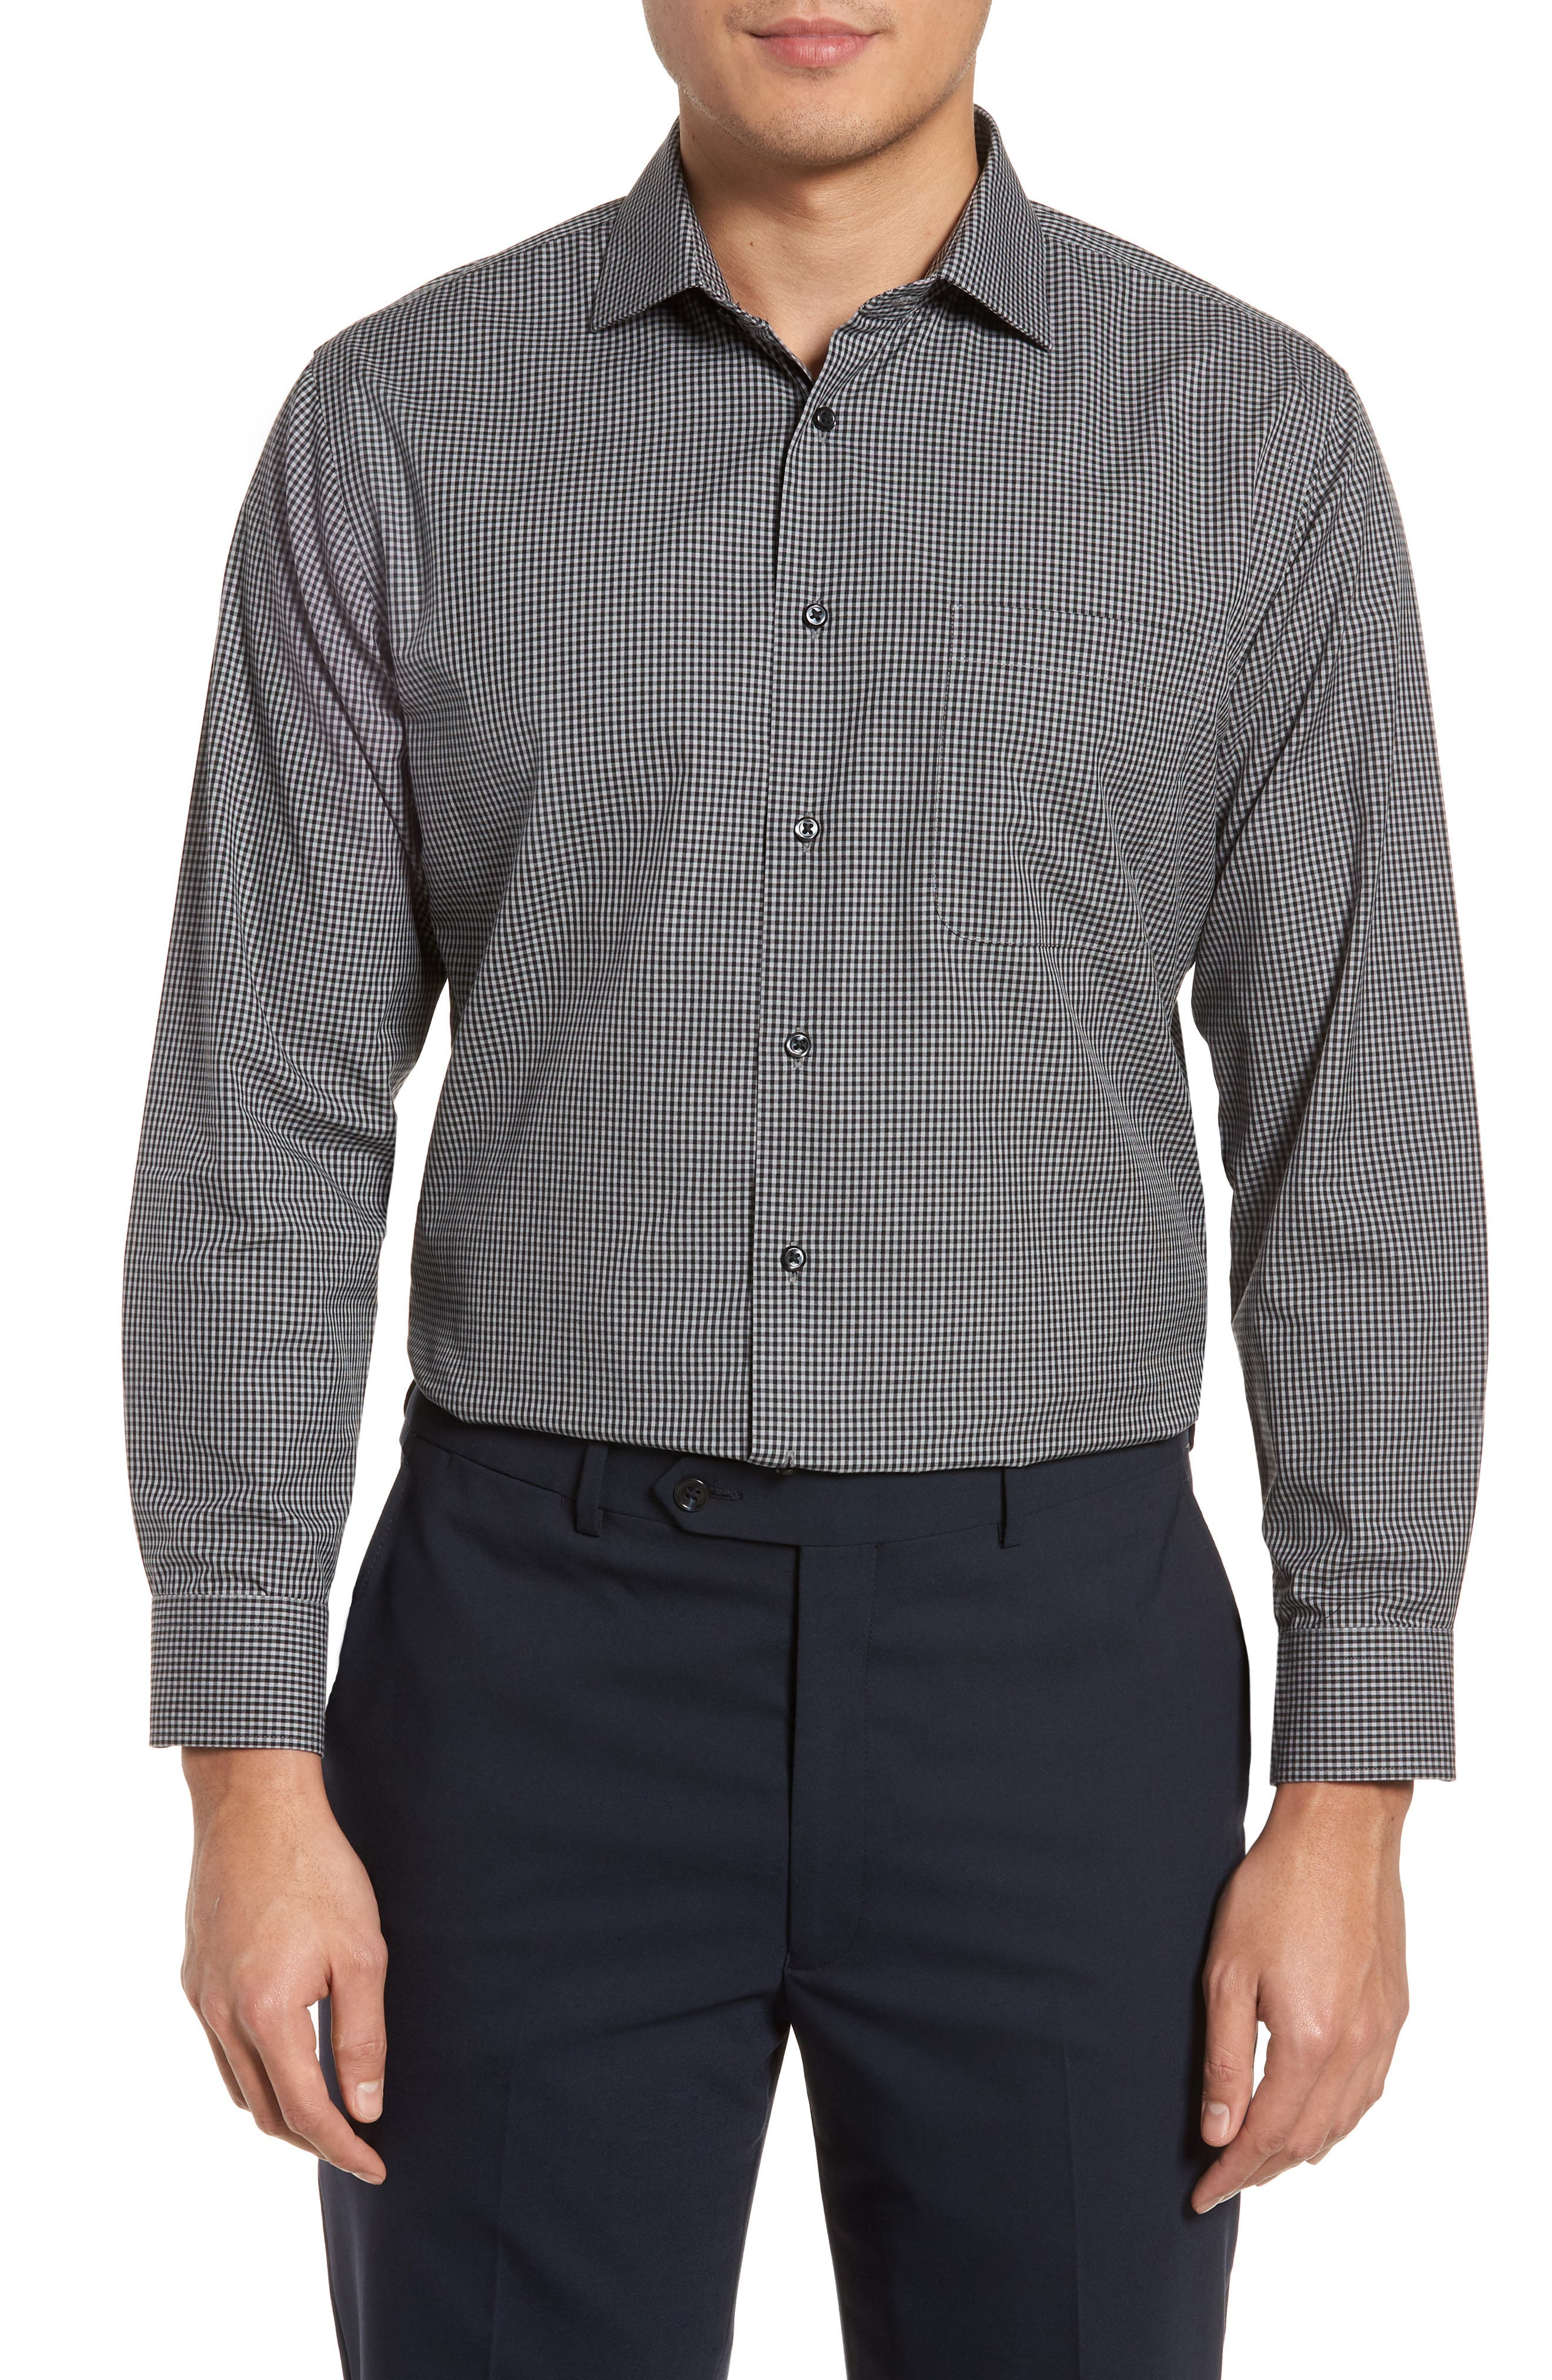 Smartcare<sup>™</sup> Trim Fit Check Dress Shirt,                         Main,                         color, 001